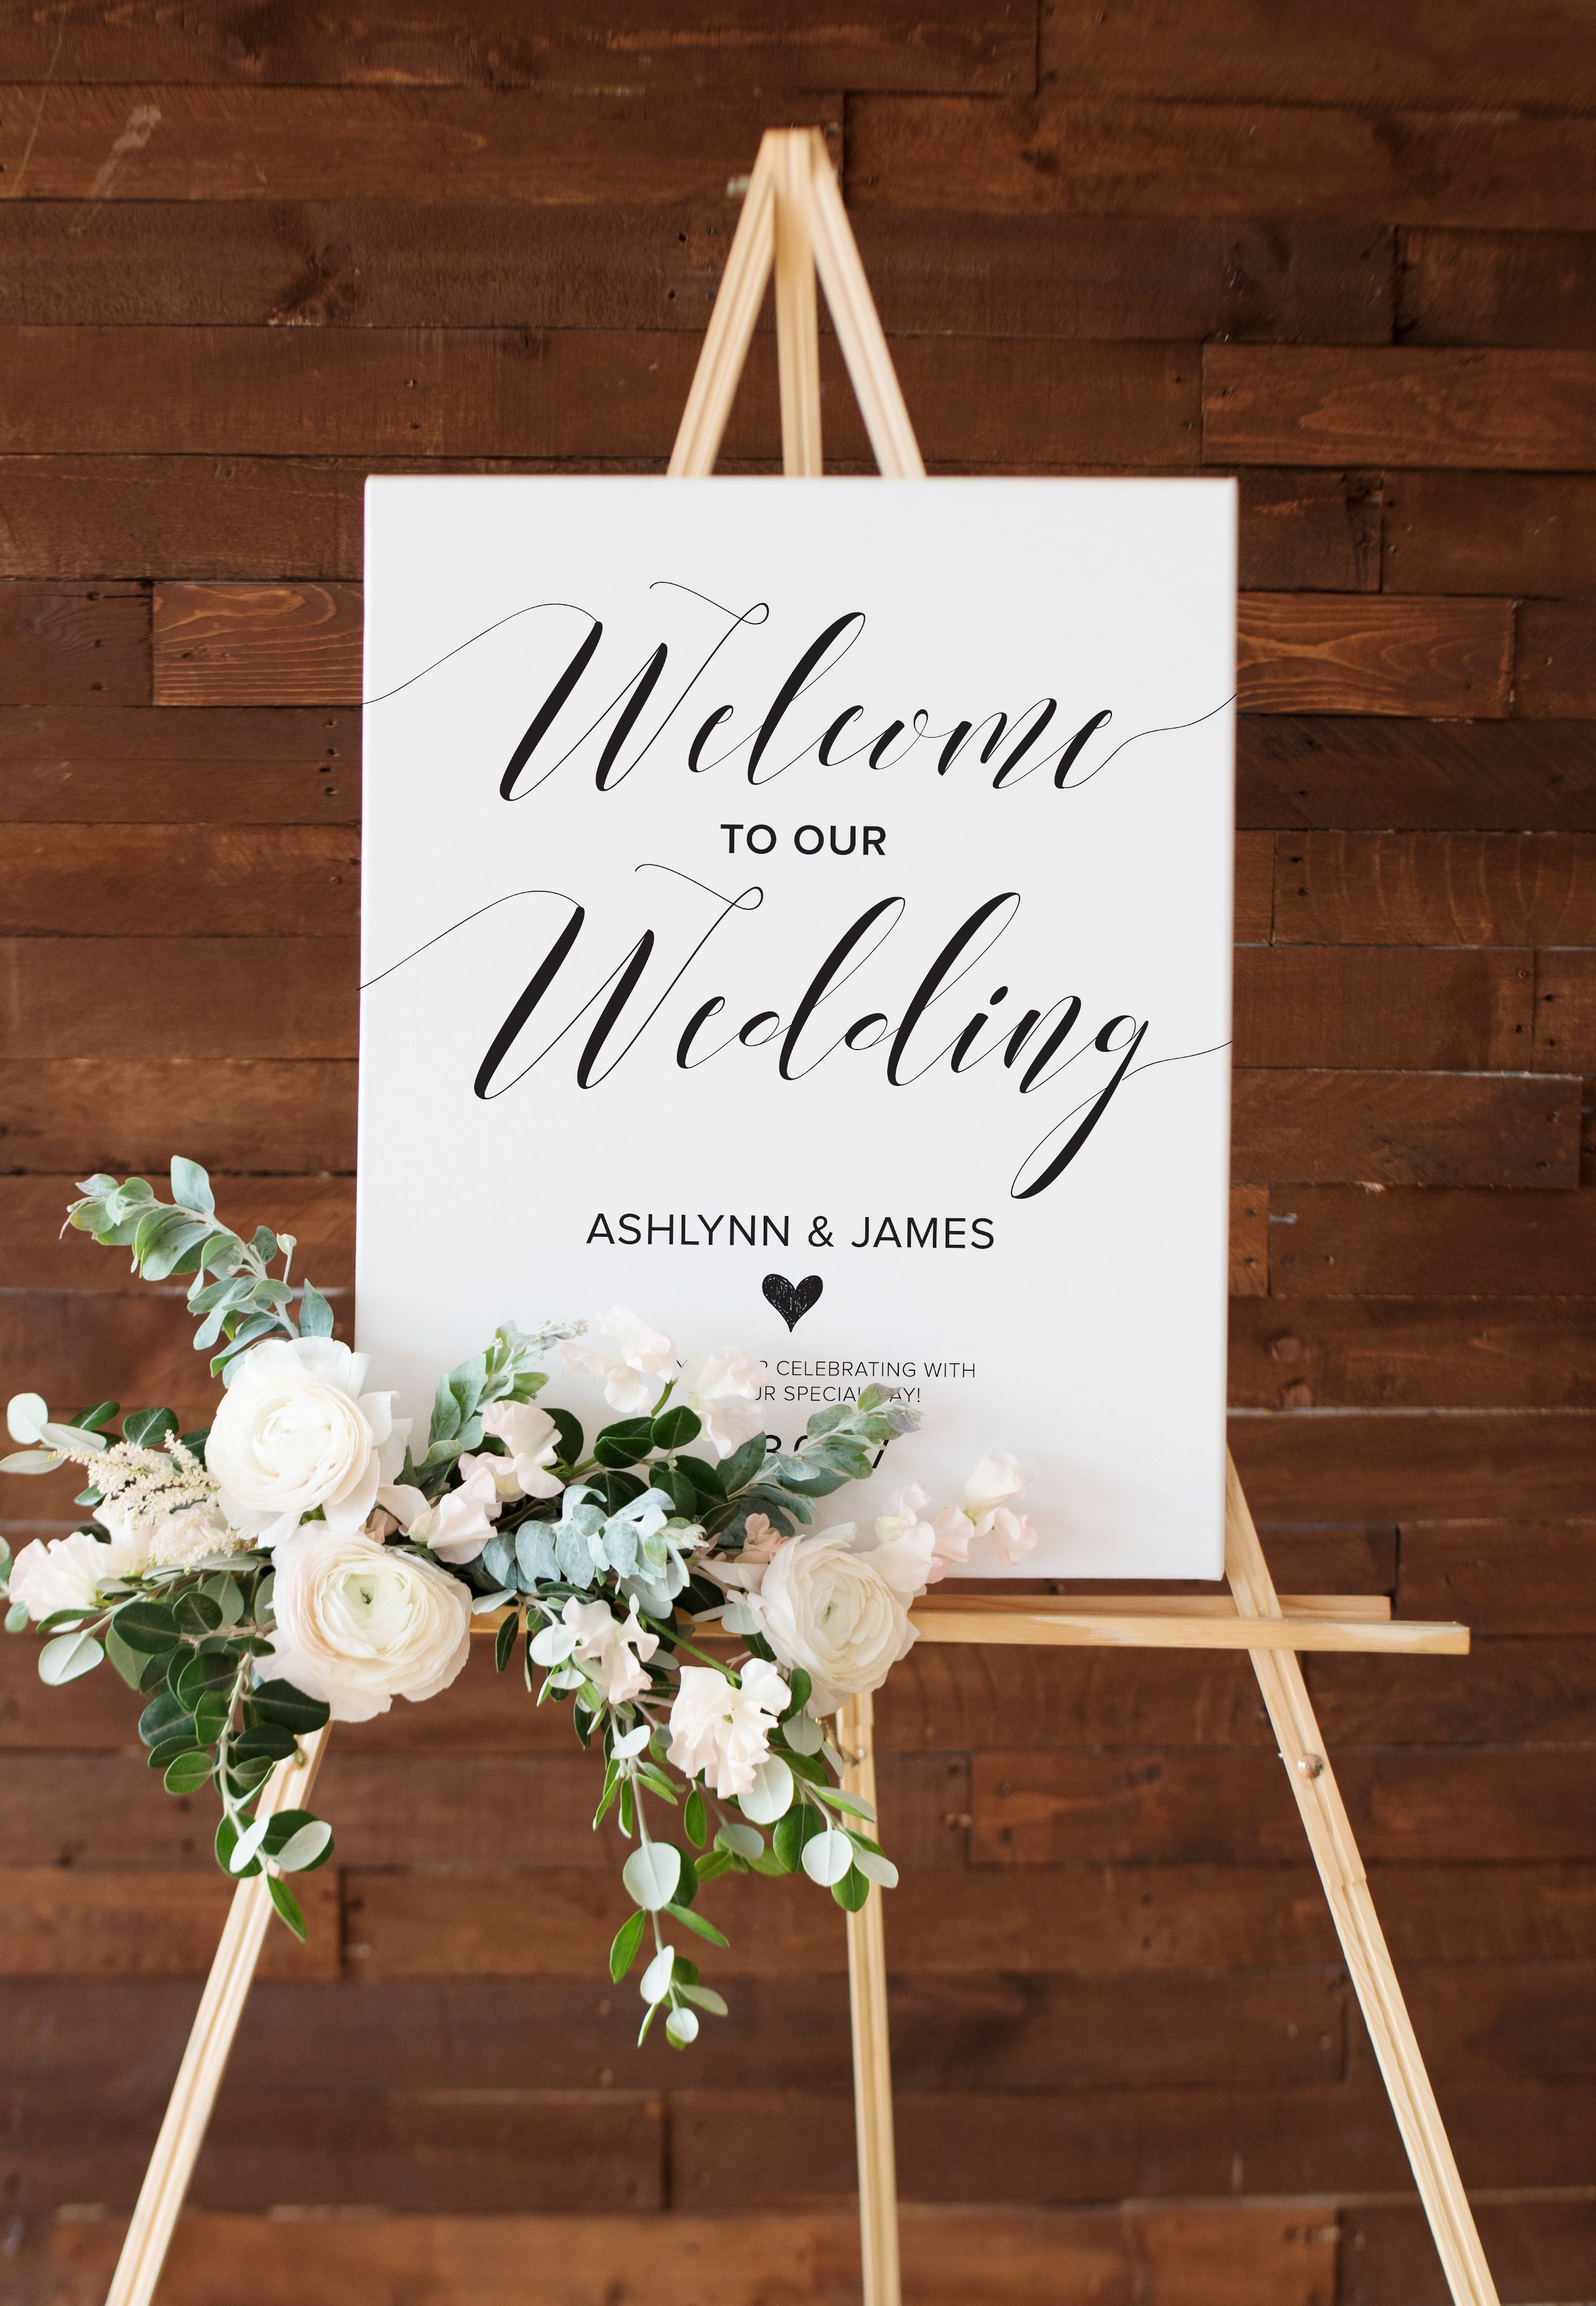 Welcome Wedding Entrance Sign Customizable Wedding Sign For Etsy In 2020 Wedding Reception Signs Wedding Reception Entrance Wedding Entrance